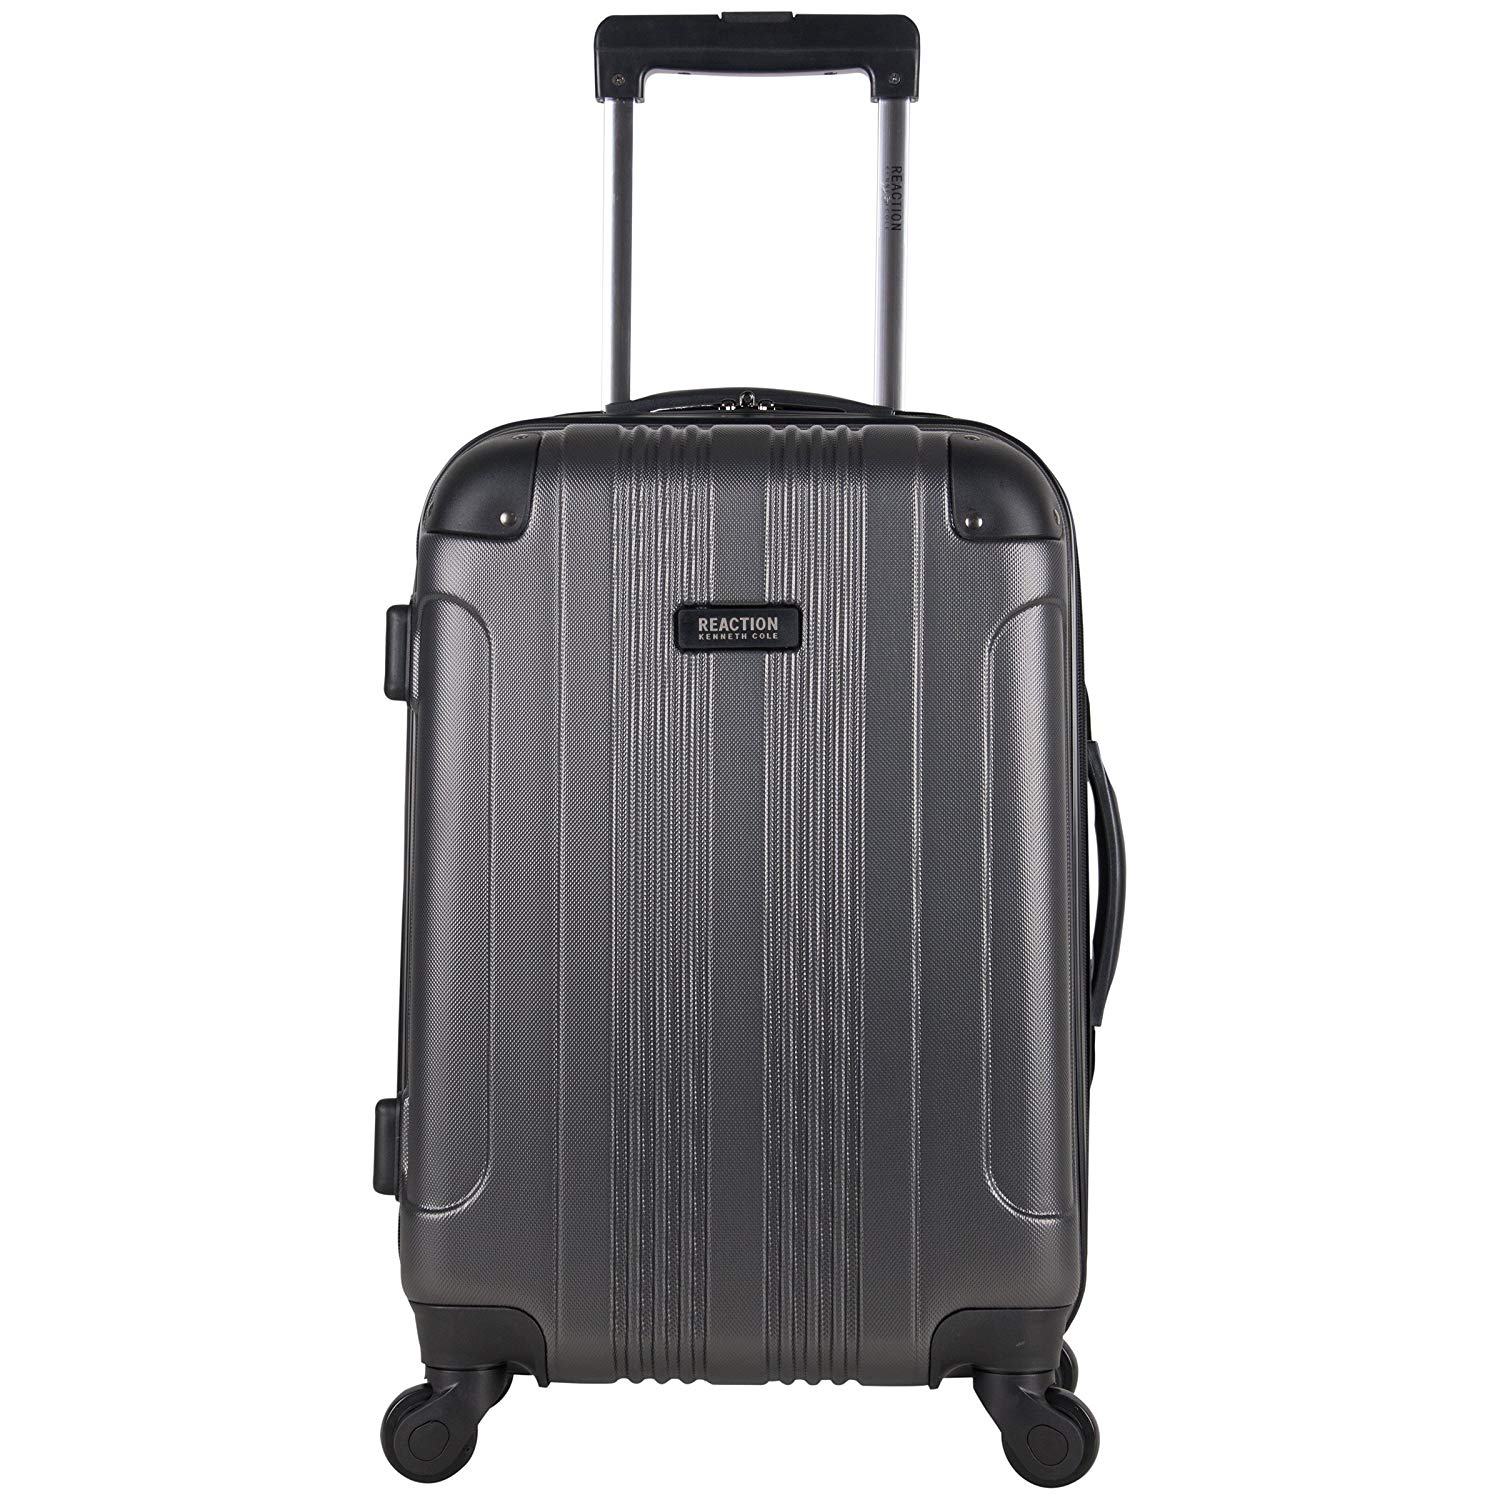 Kenneth Cole Reaction Out Of Bounds 20 Hardside 4-Wheel Spinner Carry-on Luggage